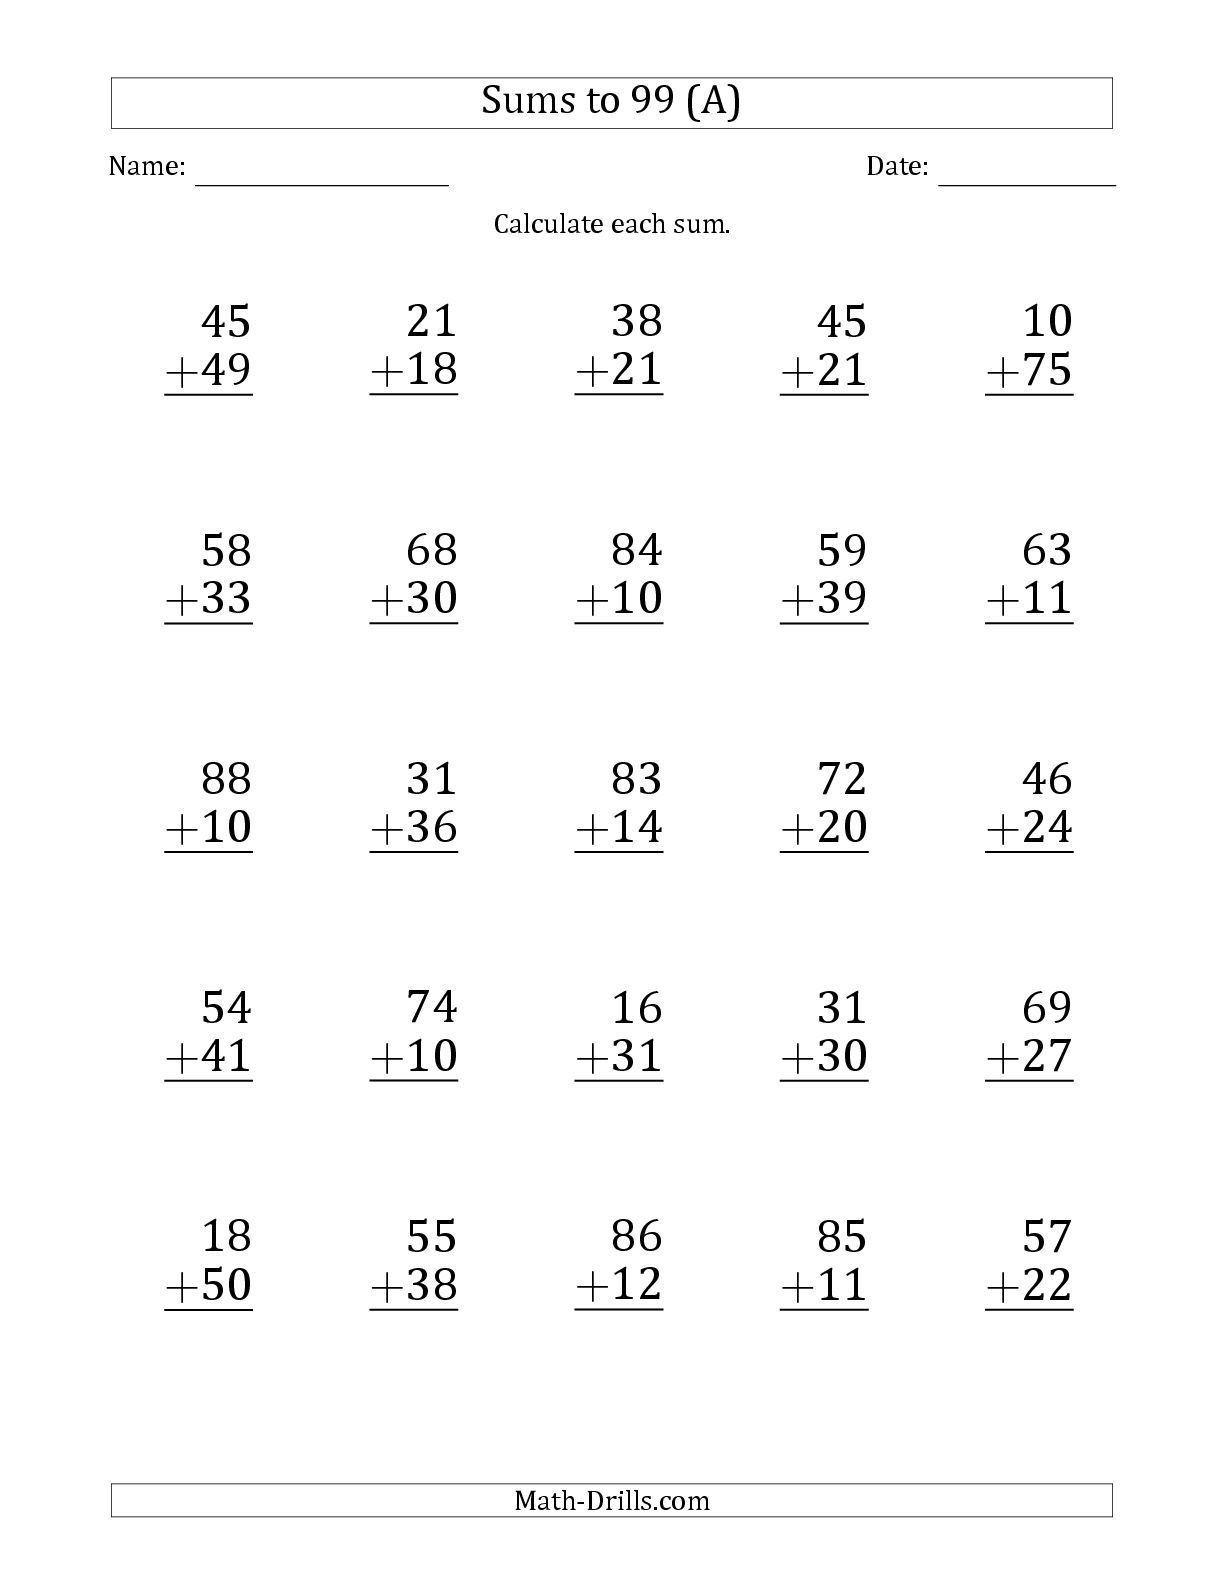 The Large Print - Adding 2-Digit Numbers with Sums up to 99 (25 Questions)  (A) math worksheet from the…   Math worksheets [ 1584 x 1224 Pixel ]